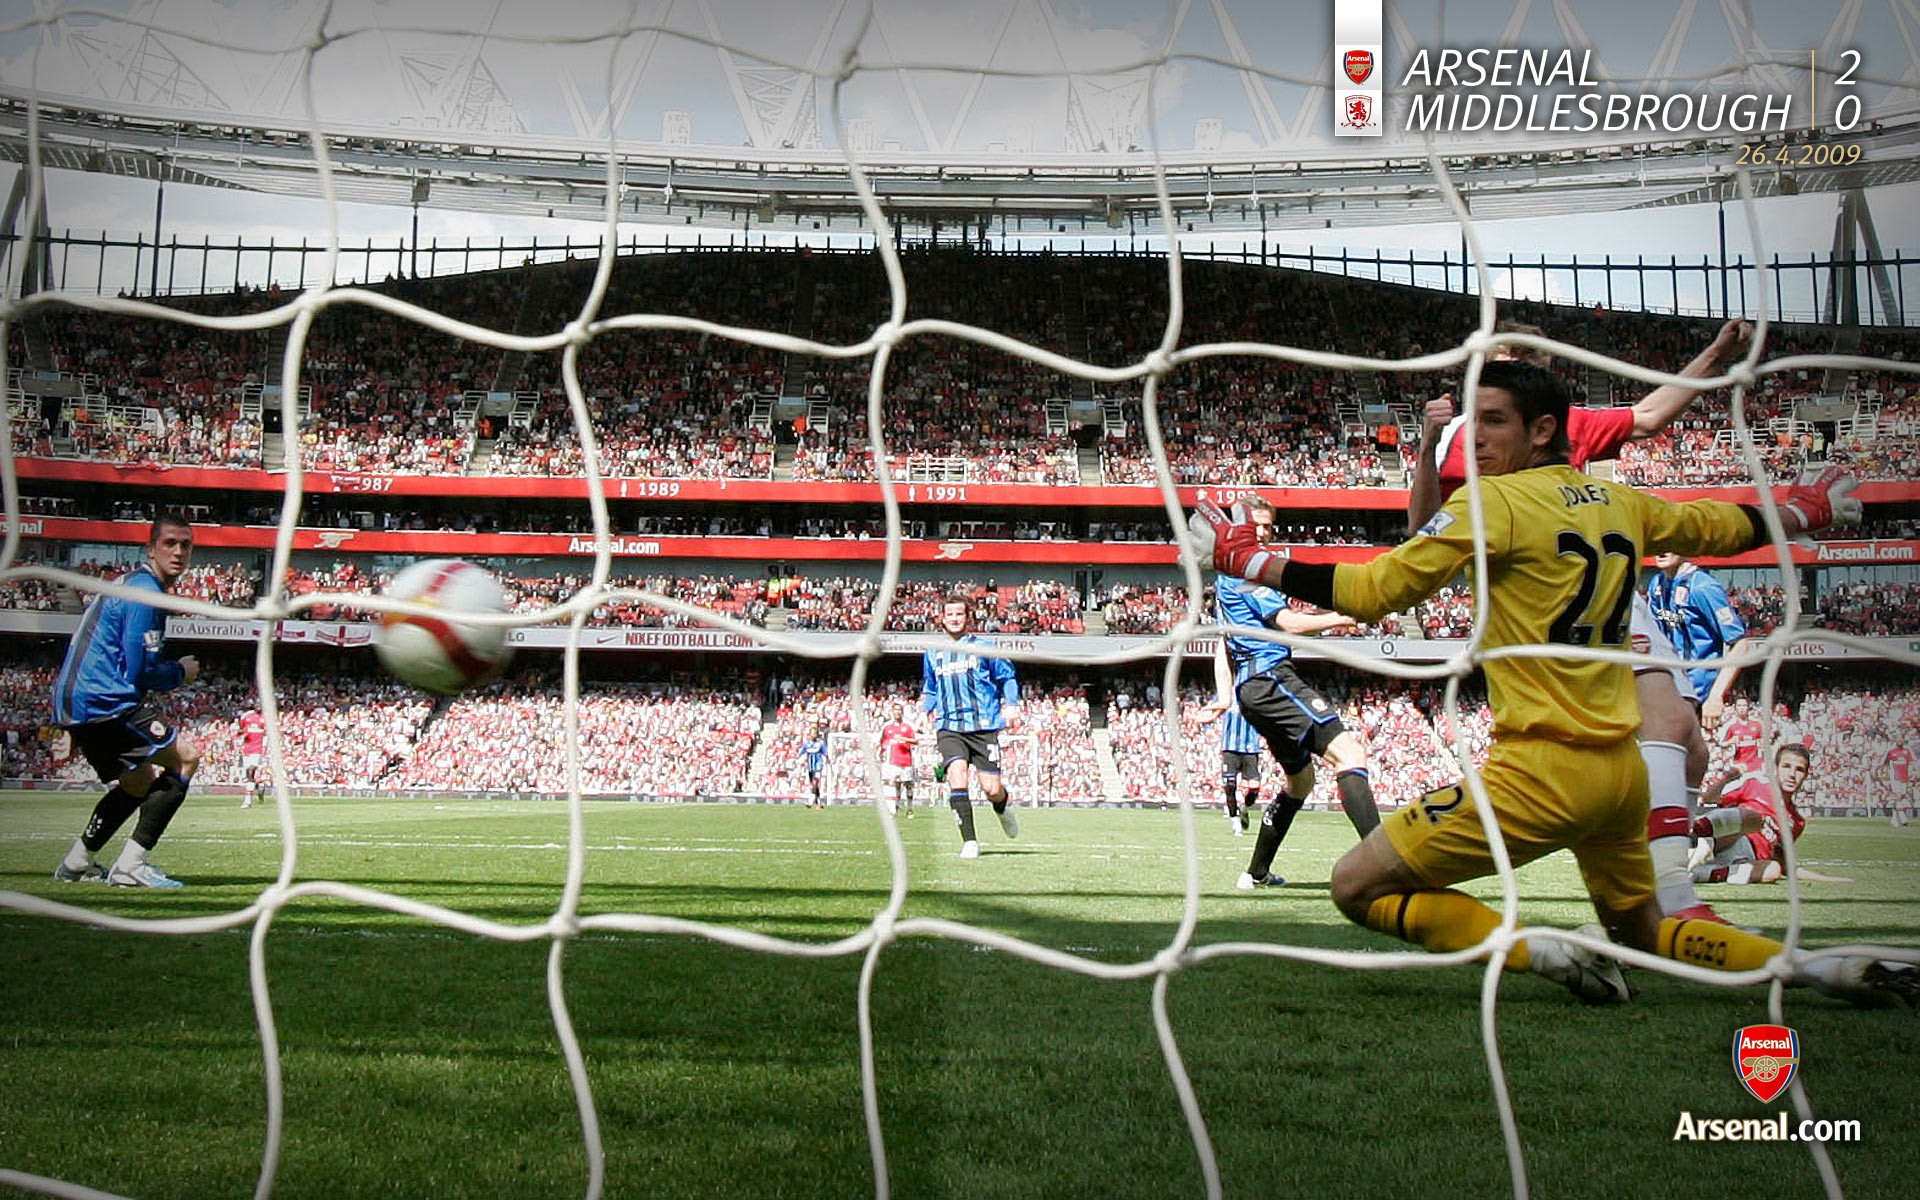 Pin arsenal wallpaper 41 1920x1200 download on pinterest for Arsenal mural wallpaper